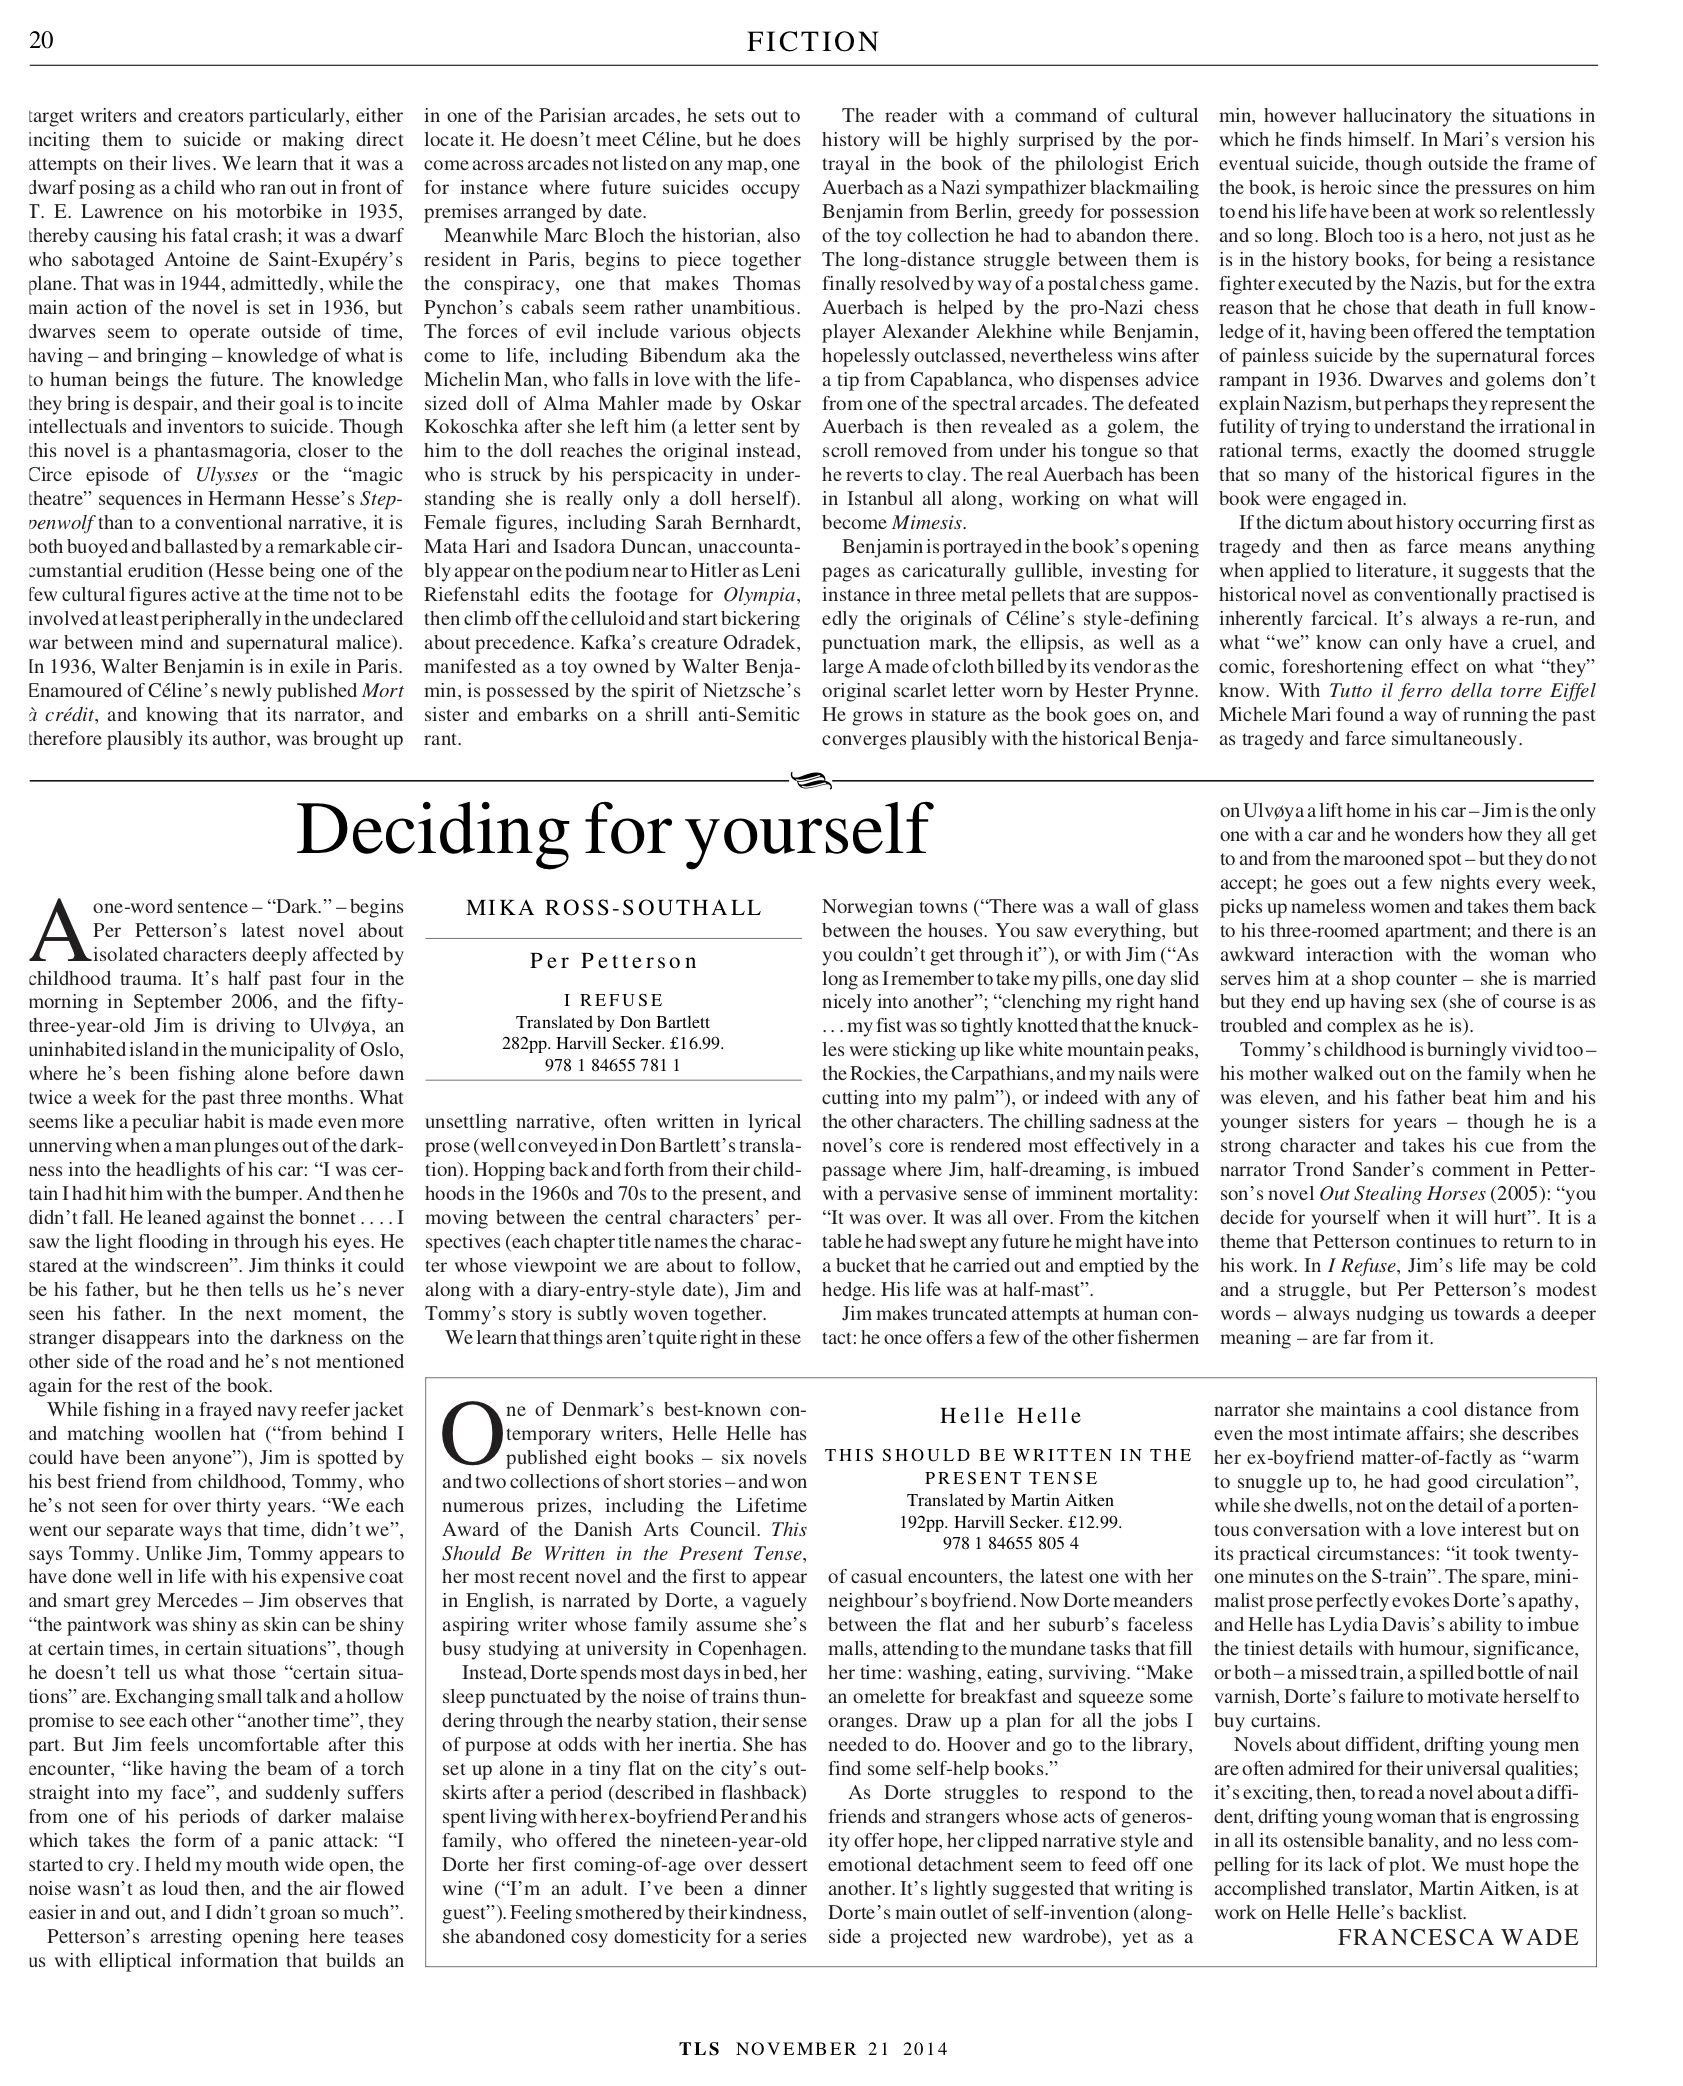 Deciding for yourself, Per Petterson, Published in The Times Literary Supplement, November 21, 2014